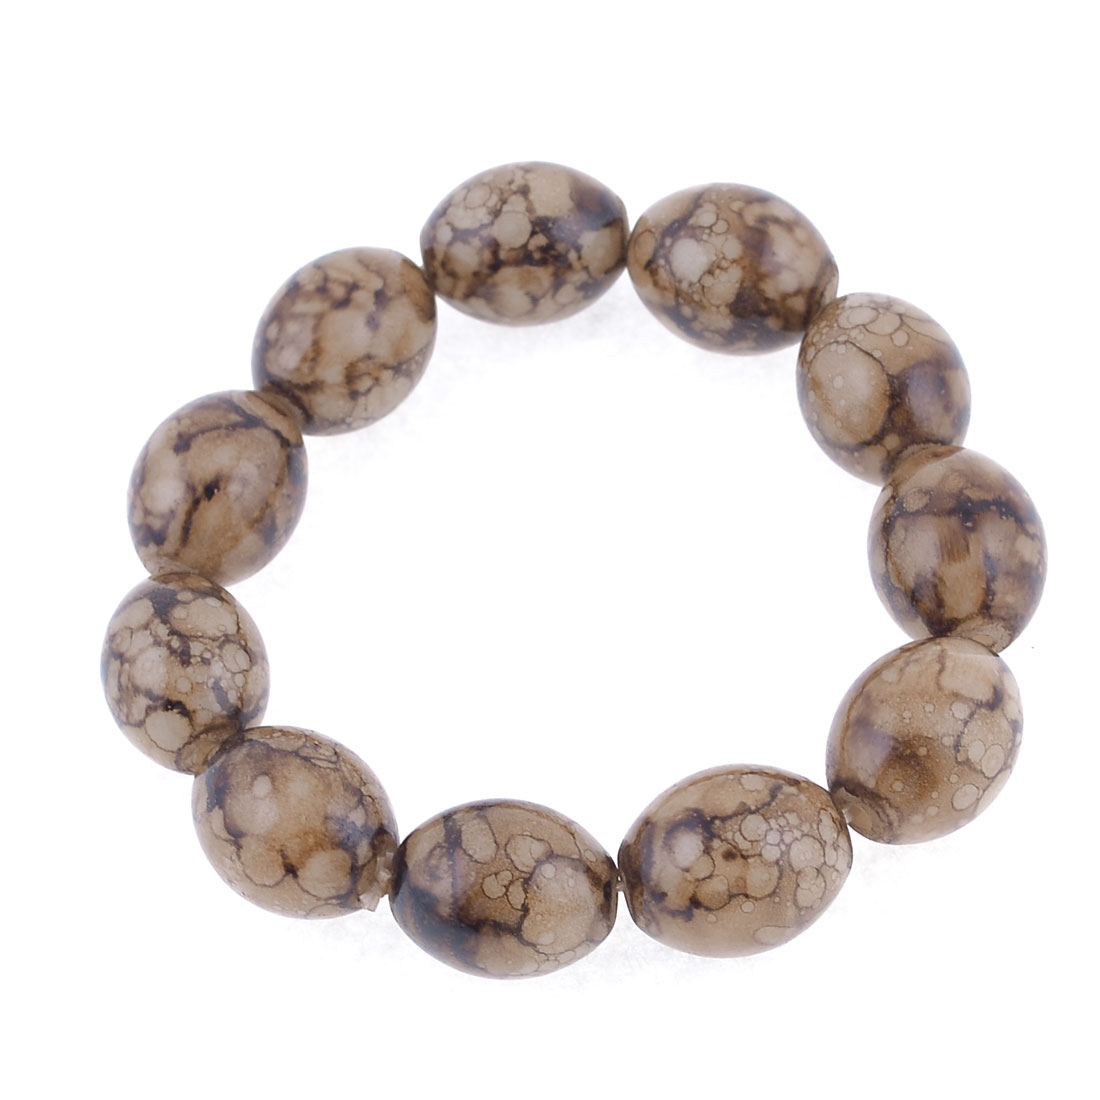 Elasticated Oval Small Beads Brown Wrist Prayer Bracelet for Unisex